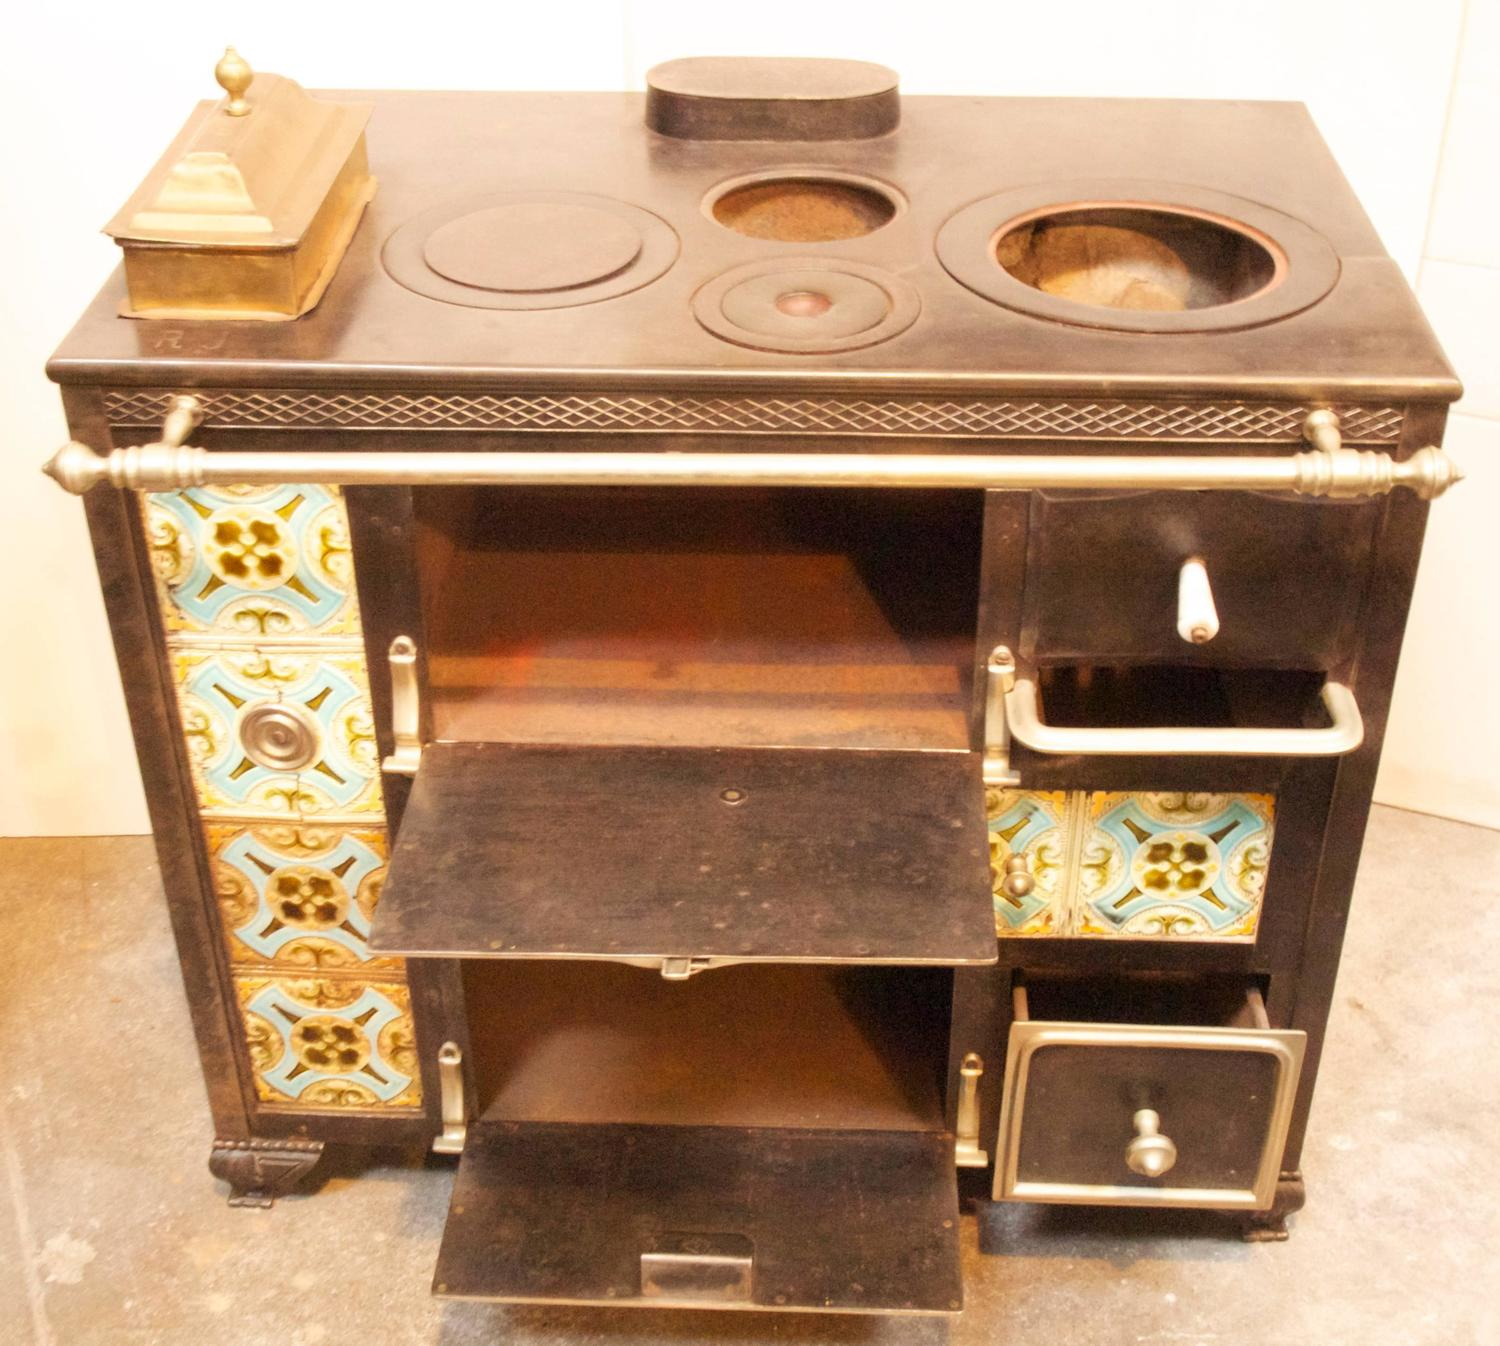 French Kitchen Stove: Early 19th Century French Cooking Stove At 1stdibs